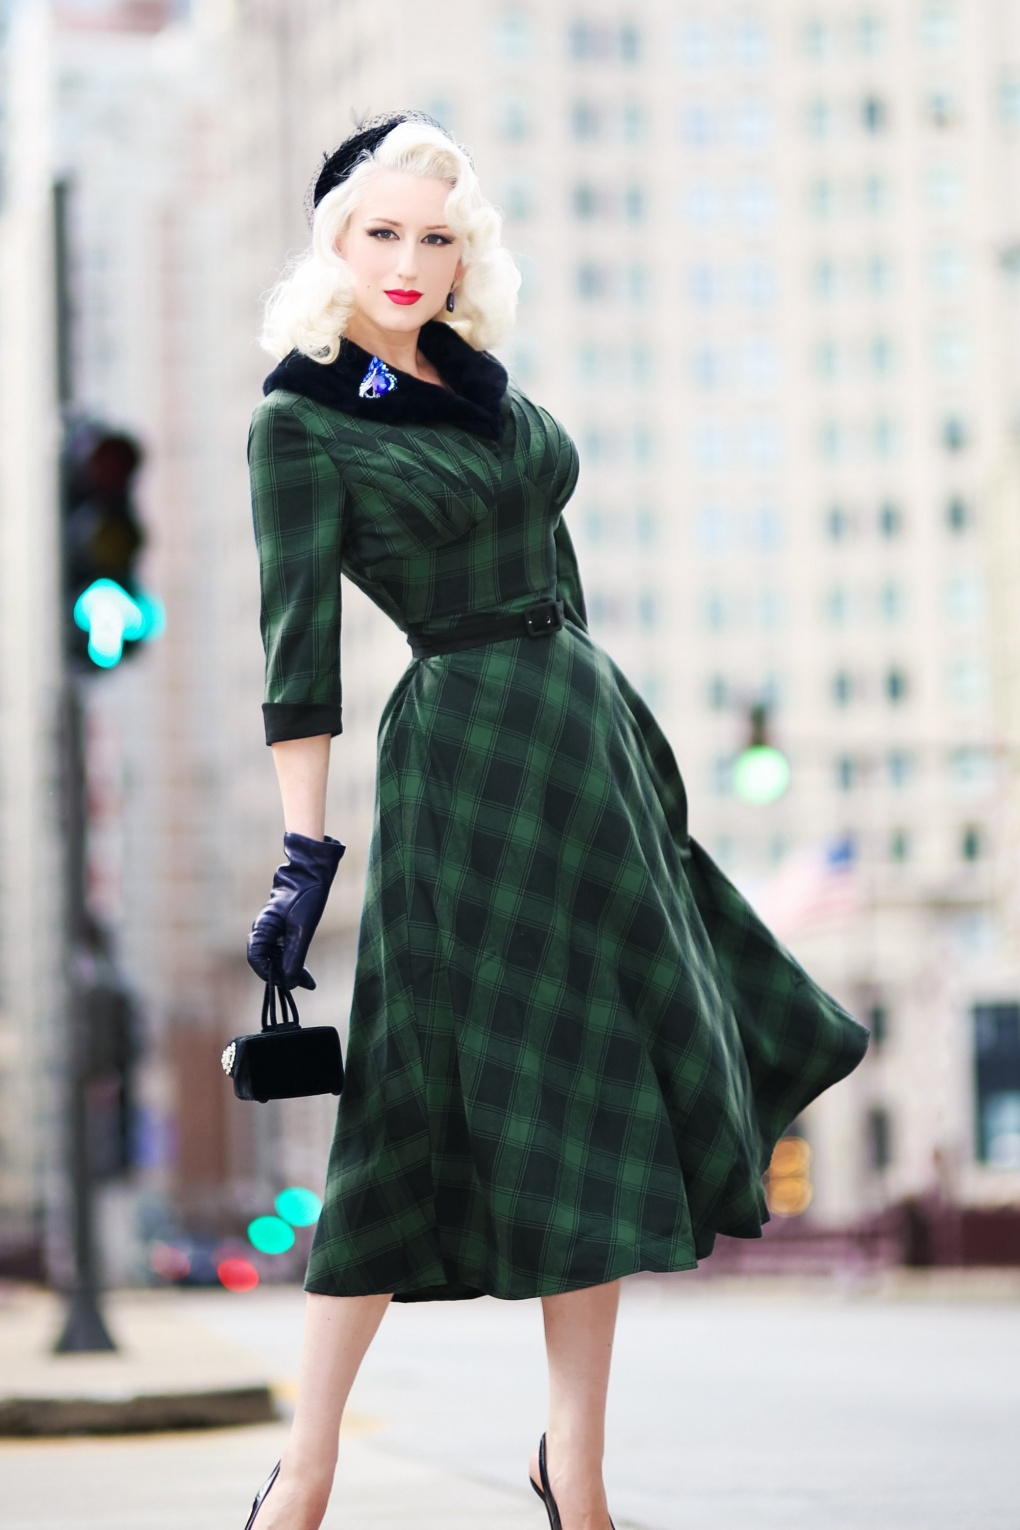 Swing Dance Clothing You Can Dance In 40s Lola Tartan Swing Dress in Green £66.82 AT vintagedancer.com